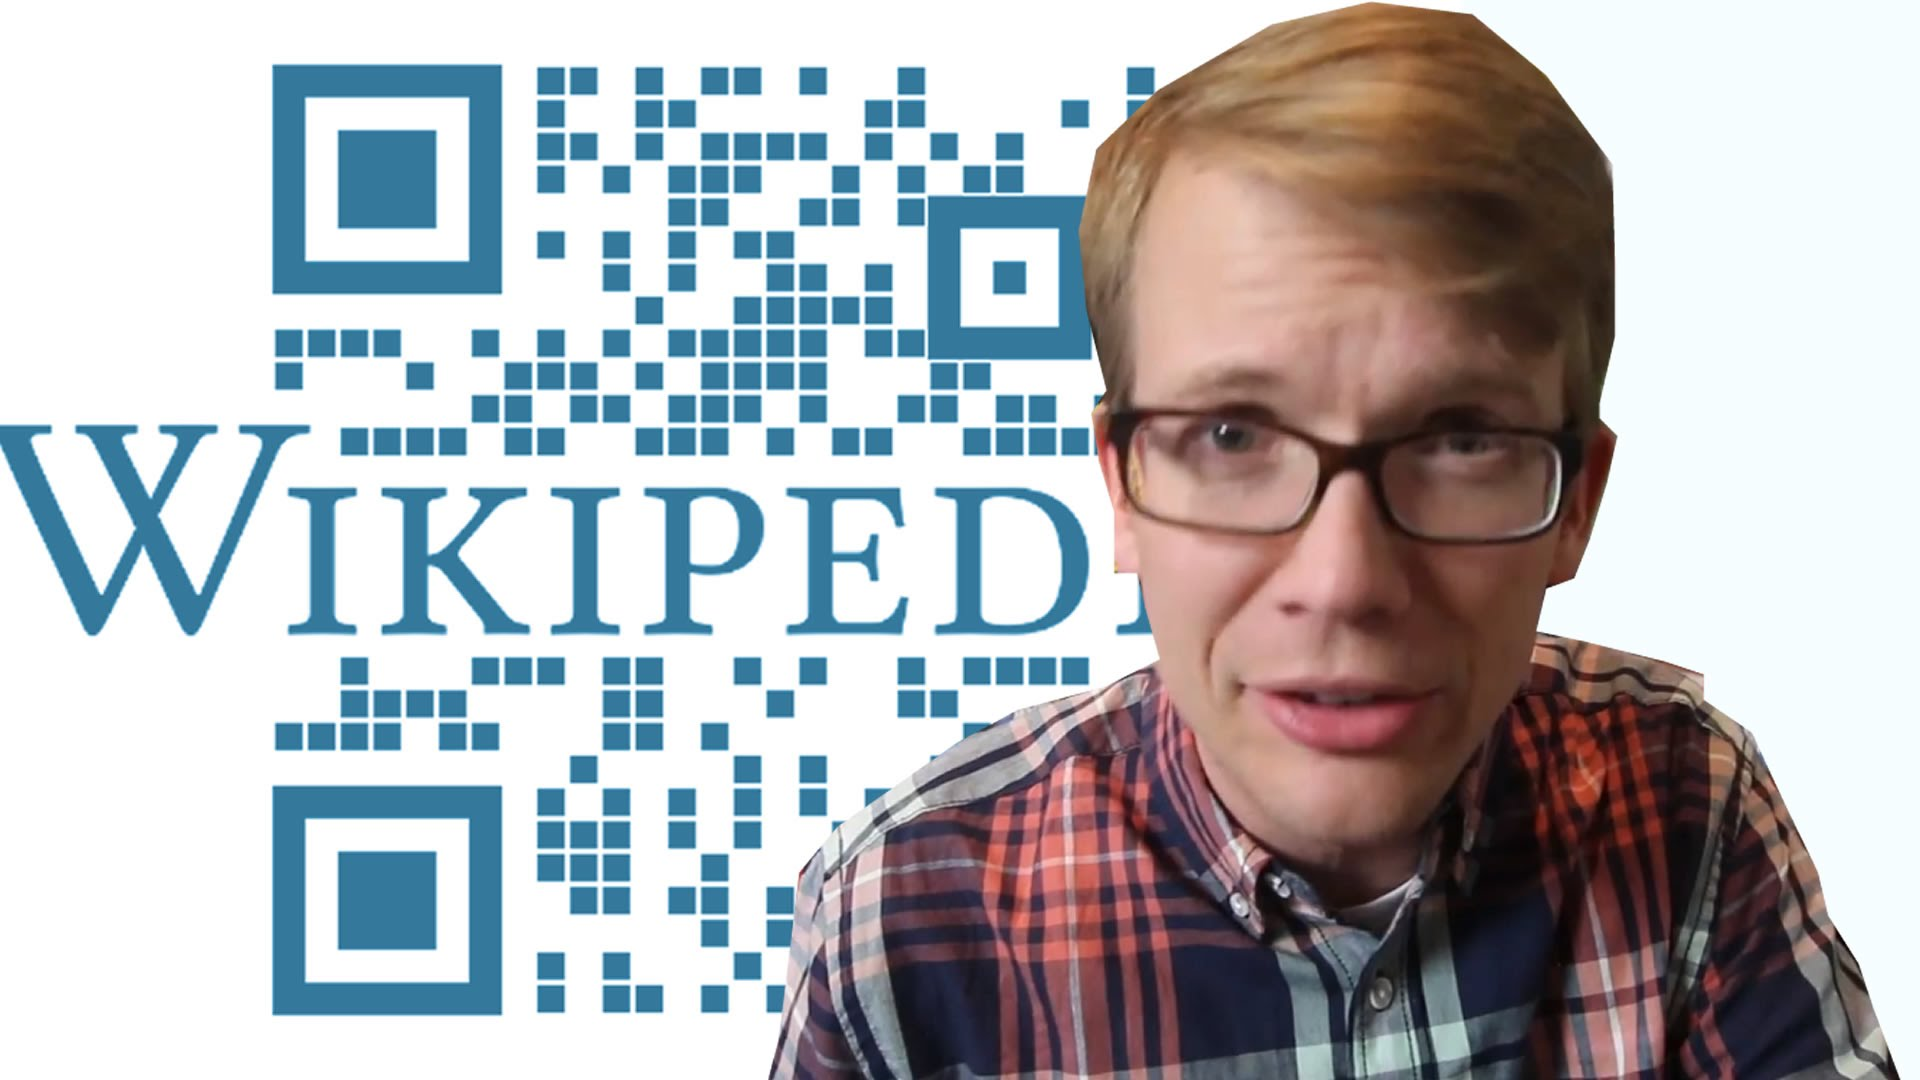 How to fit ALL of Wikipedia in One QR code